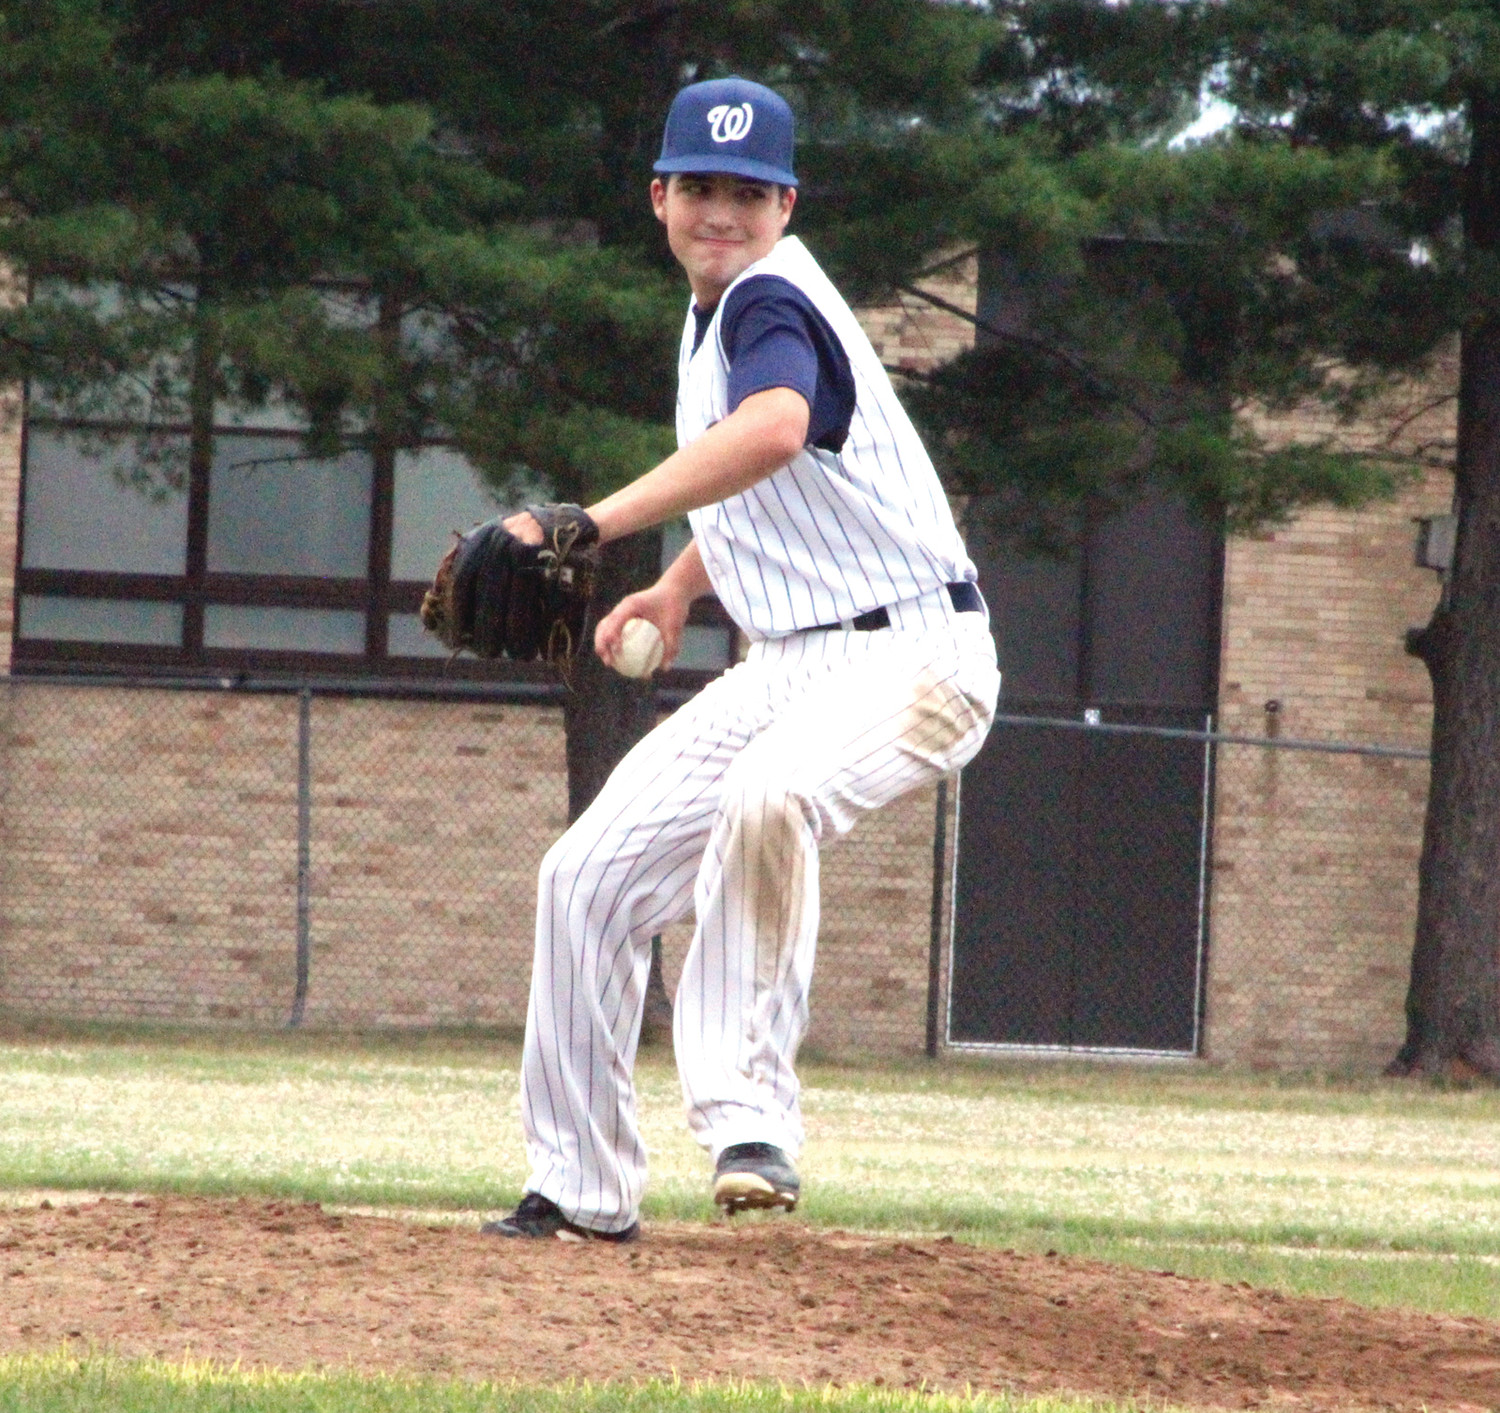 ON THE HILL: Warwick PAL's Cam Armenti delivers a pitch.